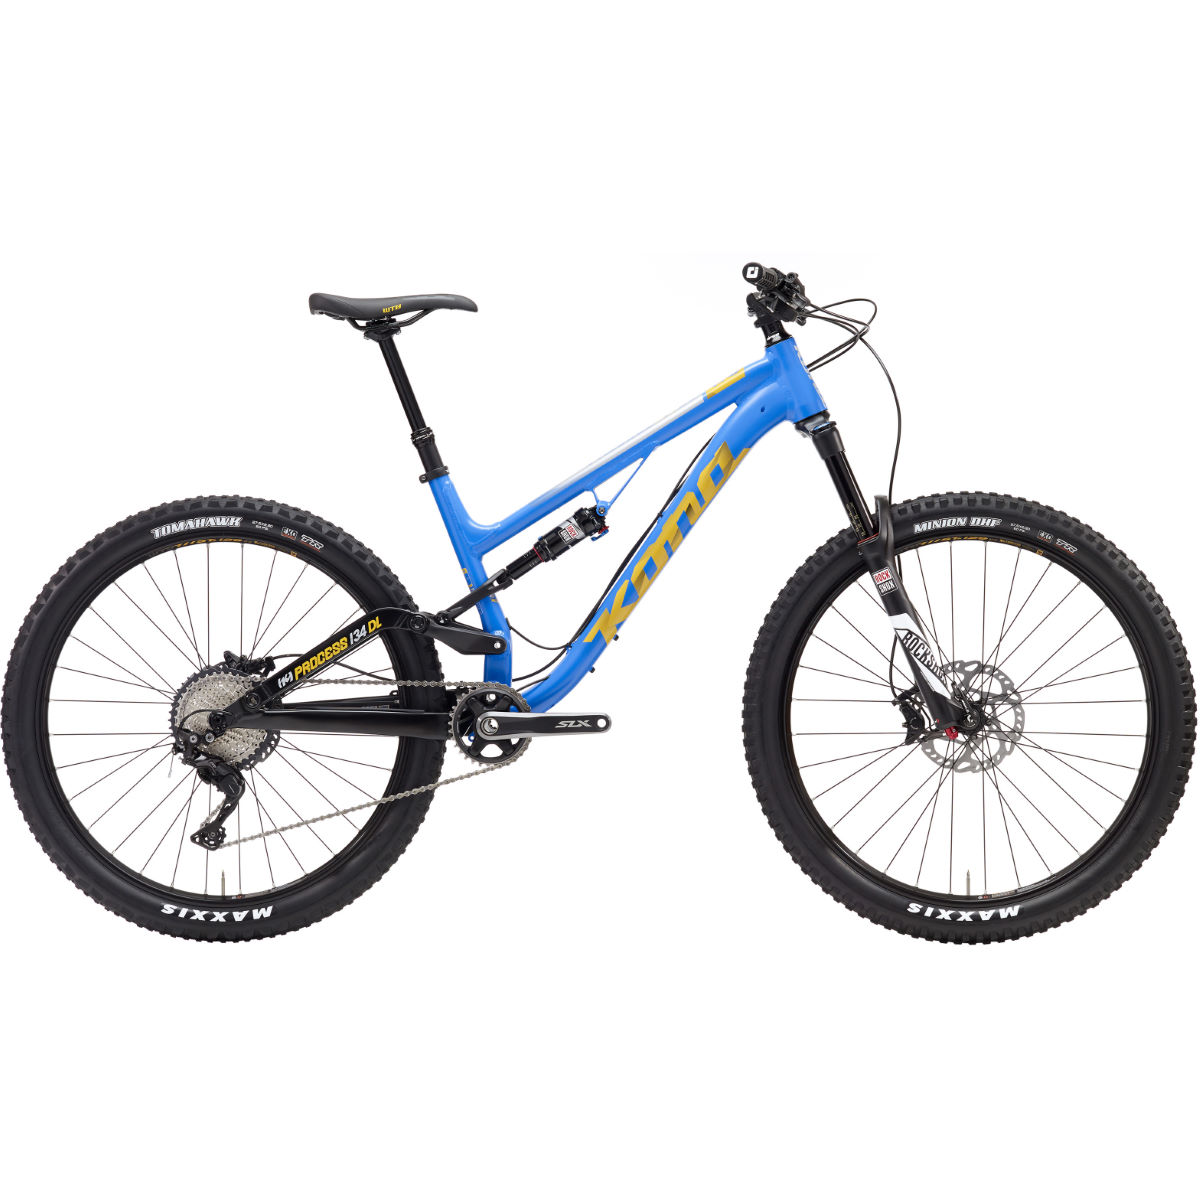 VTT Kona Process 134 DL (2017) - Large Stock Bike Bleu